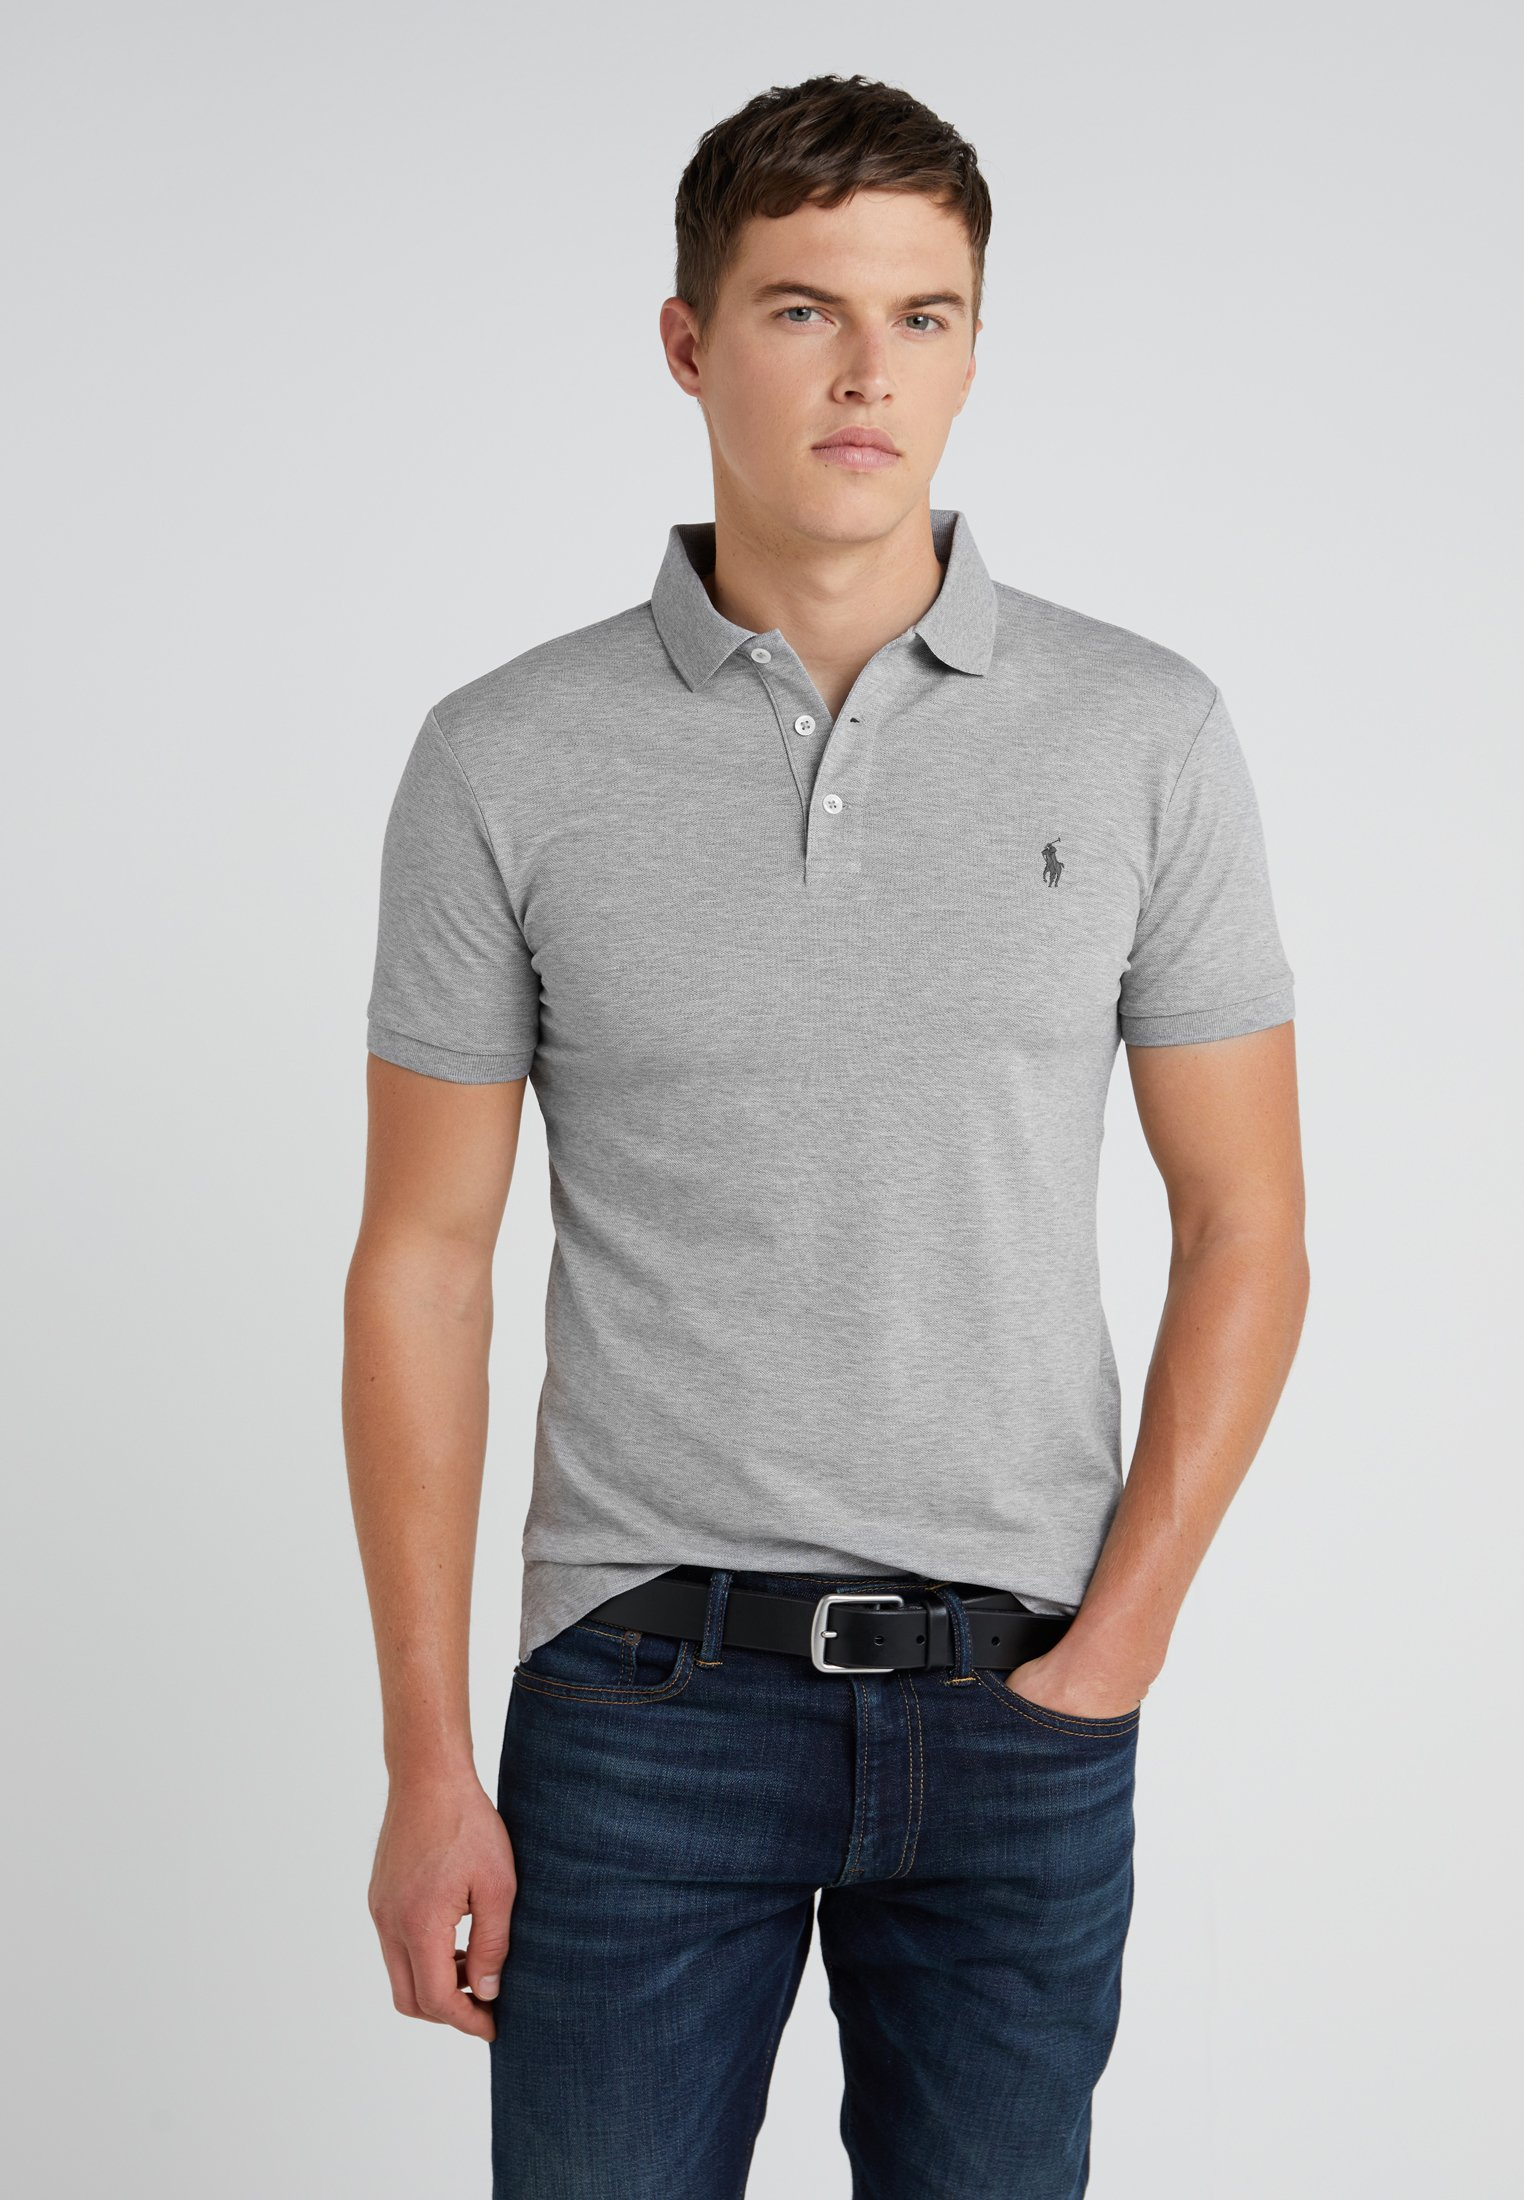 Polo Ralph Ralph LaurenAndover Heather Polo yvfI76bgY